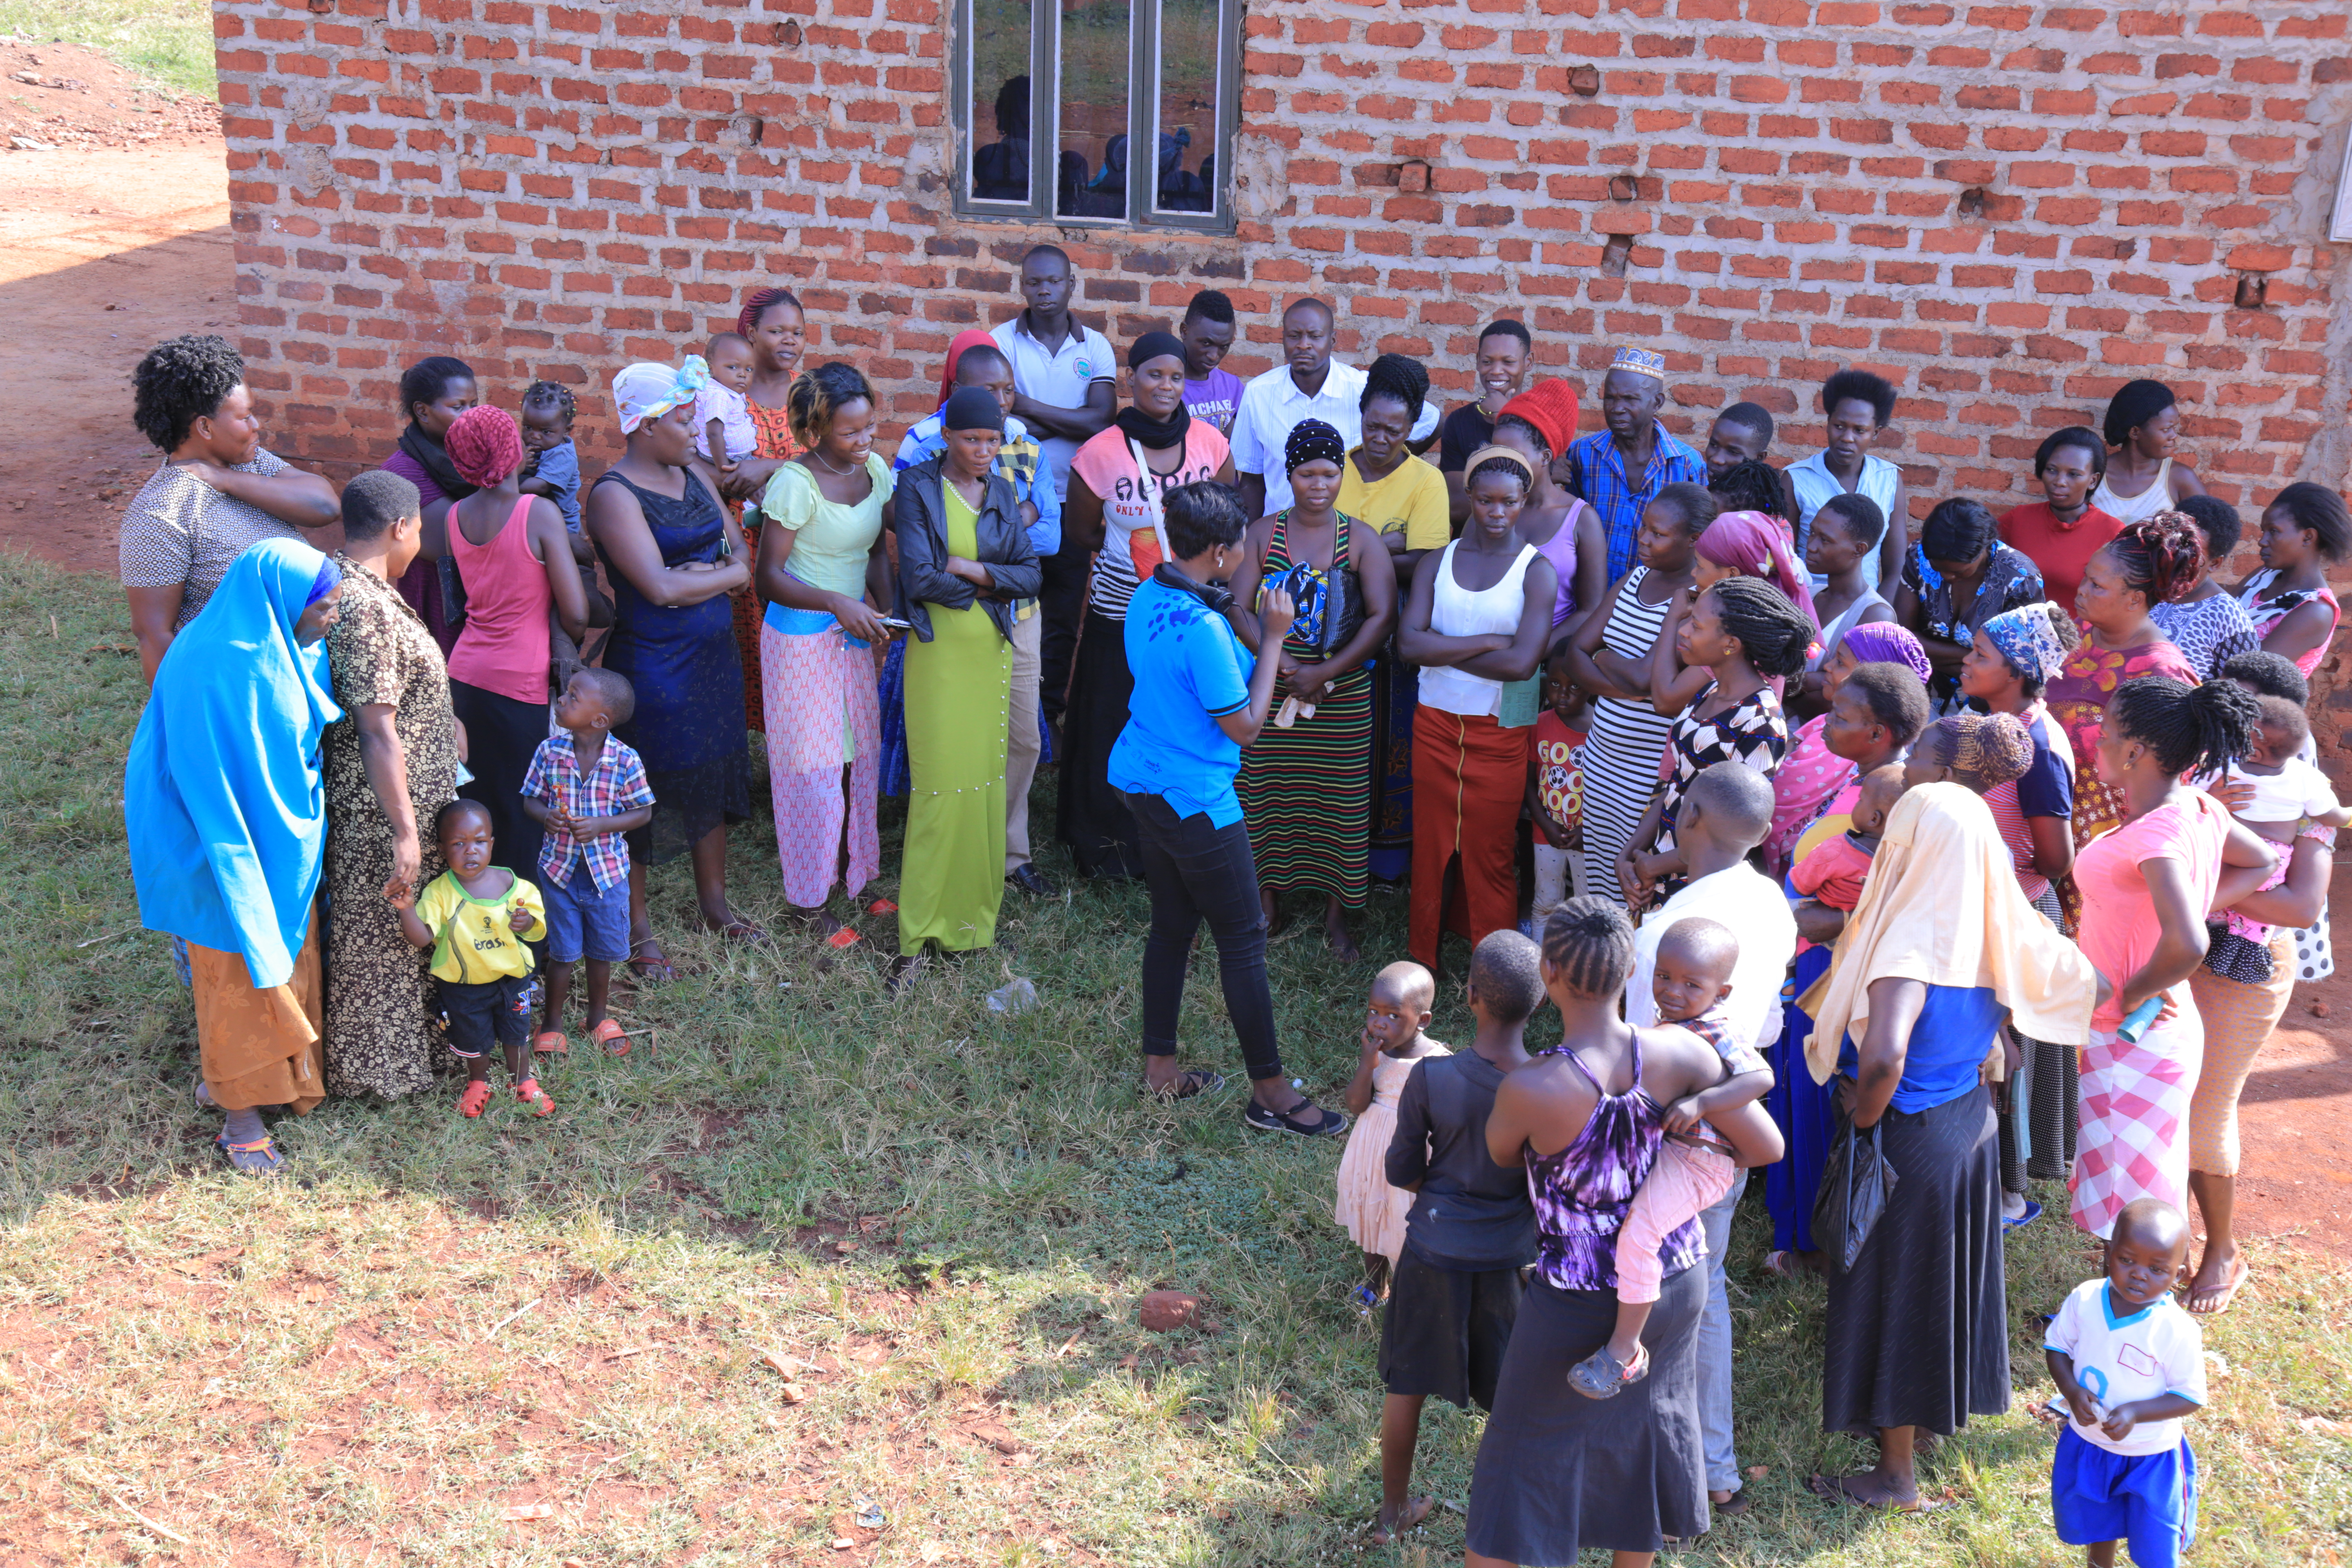 Budumbuli To The World; Our Community Outreach In Jinja's Peri-Urban Hood.